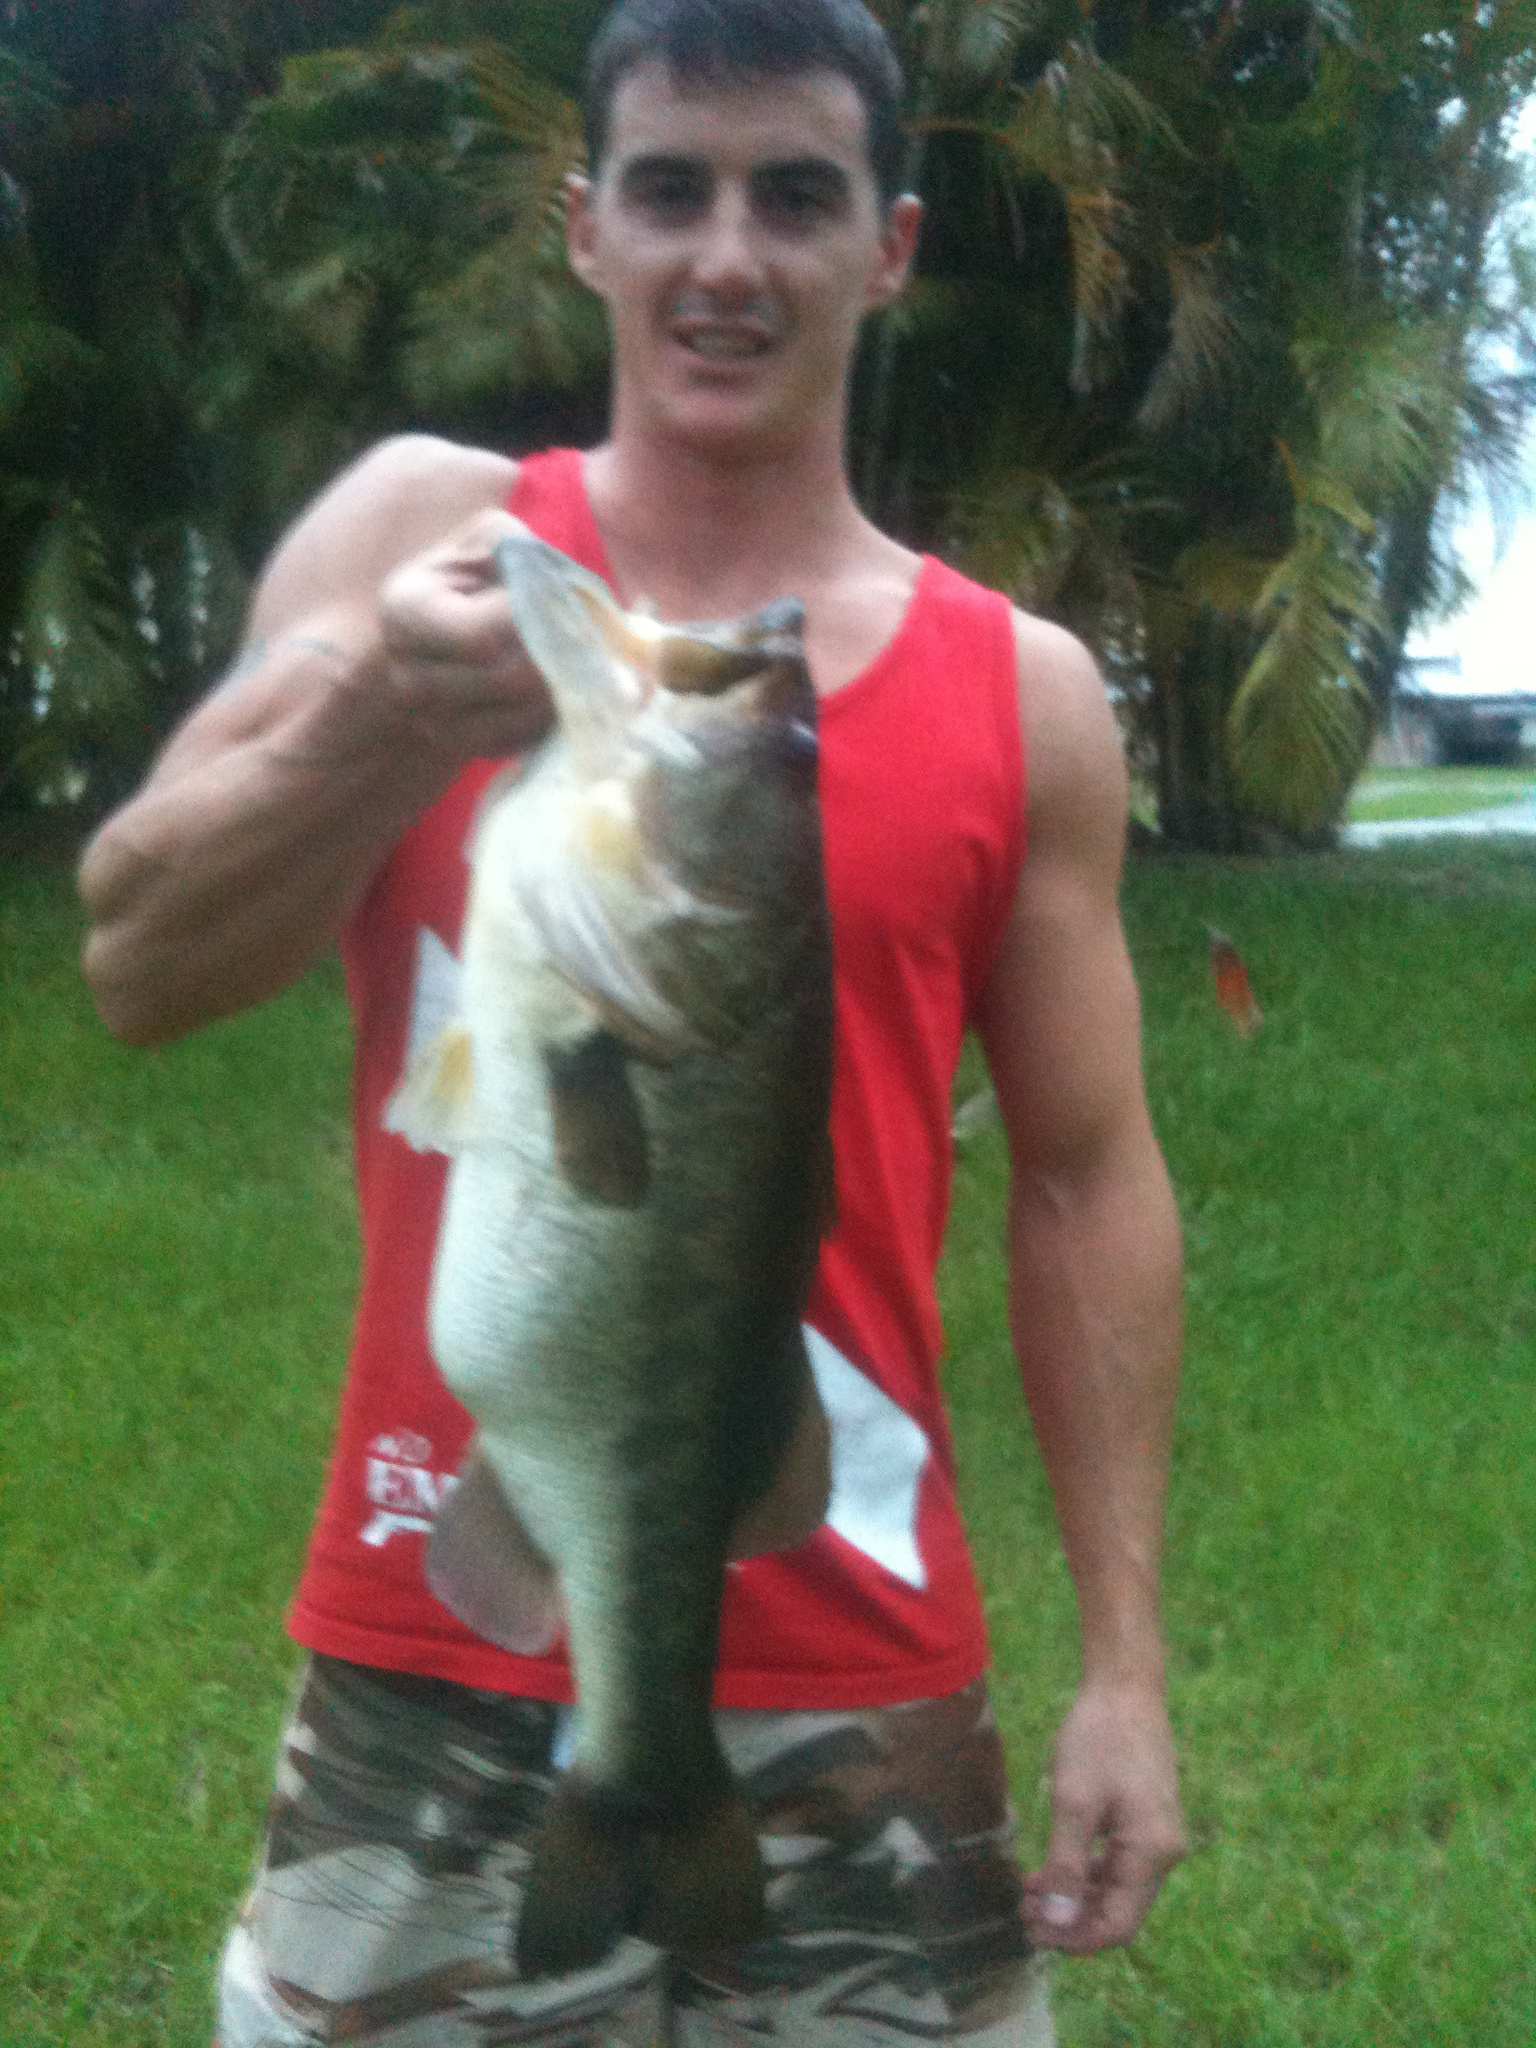 Collin Mccosh Wellington Florida  7.10lb weighed on a rapala digital scale  Species: Largemouth